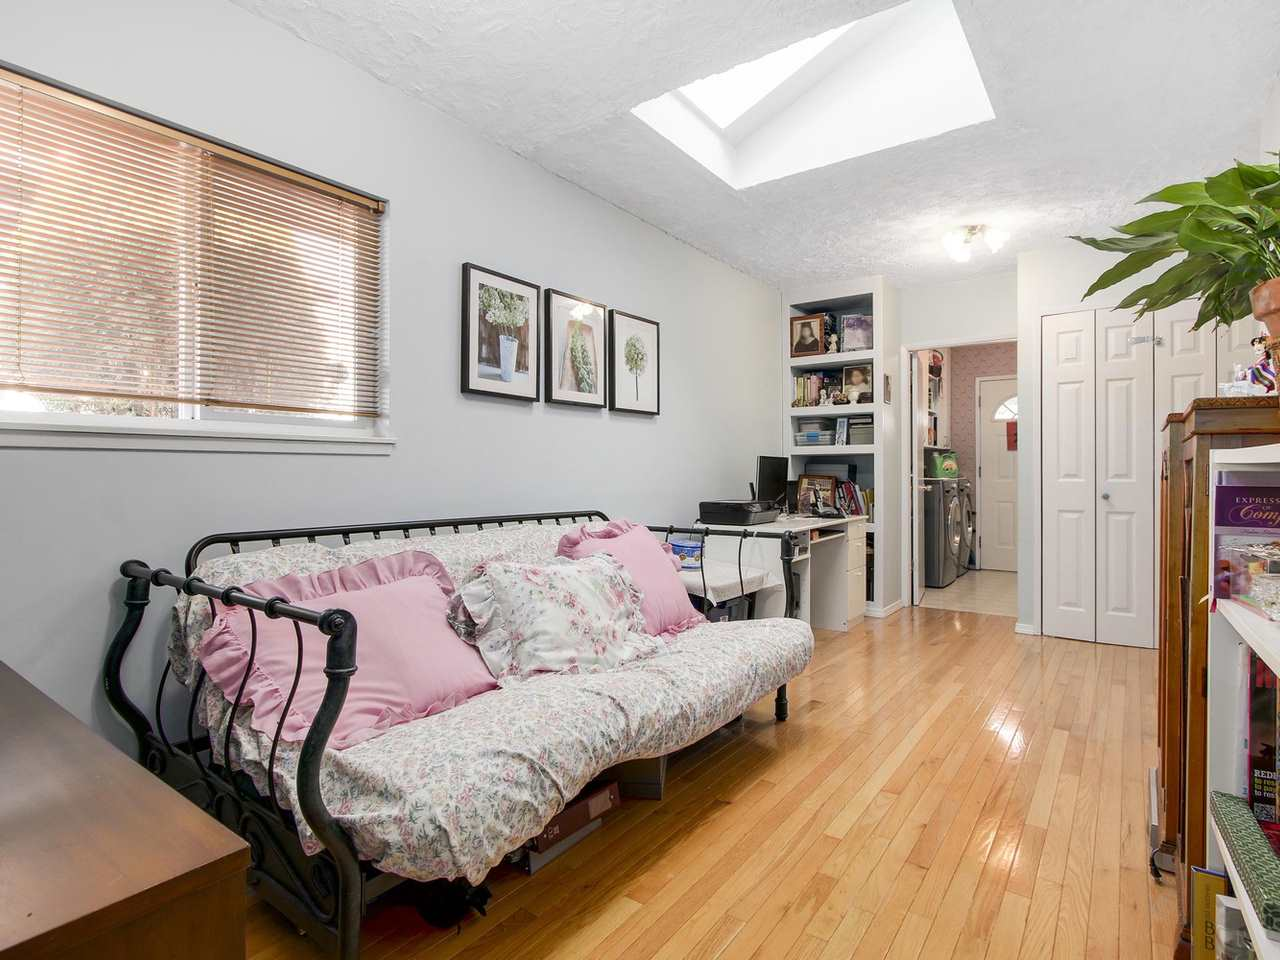 Photo 11: Photos: 1520 MACGOWAN Avenue in North Vancouver: Norgate House for sale : MLS® # R2137032